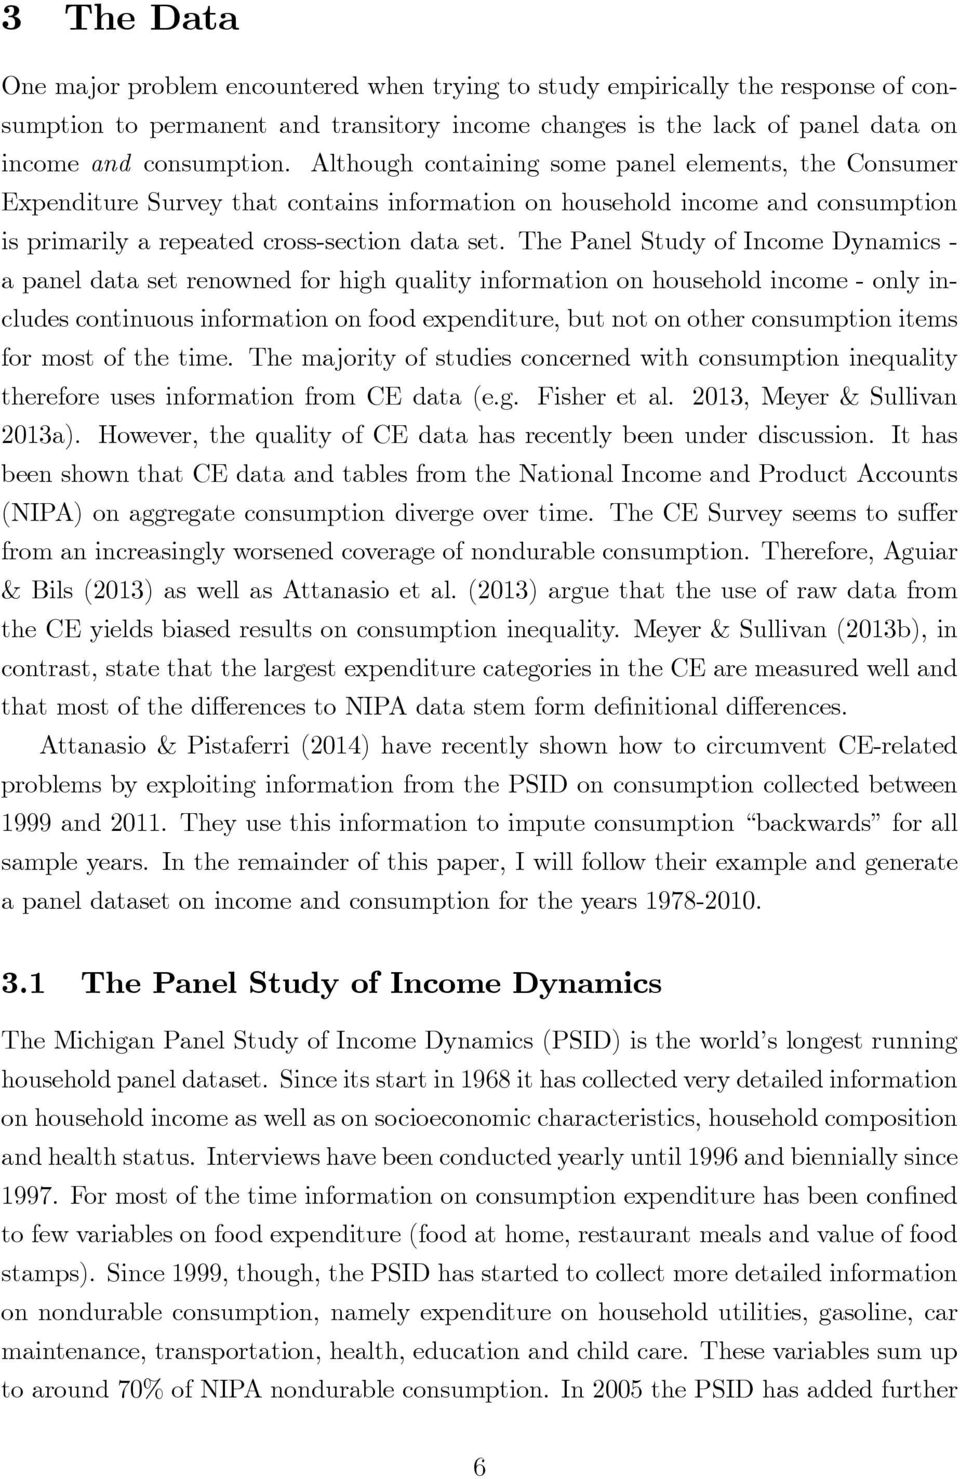 The Panel Study of Income Dynamics - a panel data set renowned for high quality information on household income - only includes continuous information on food expenditure, but not on other